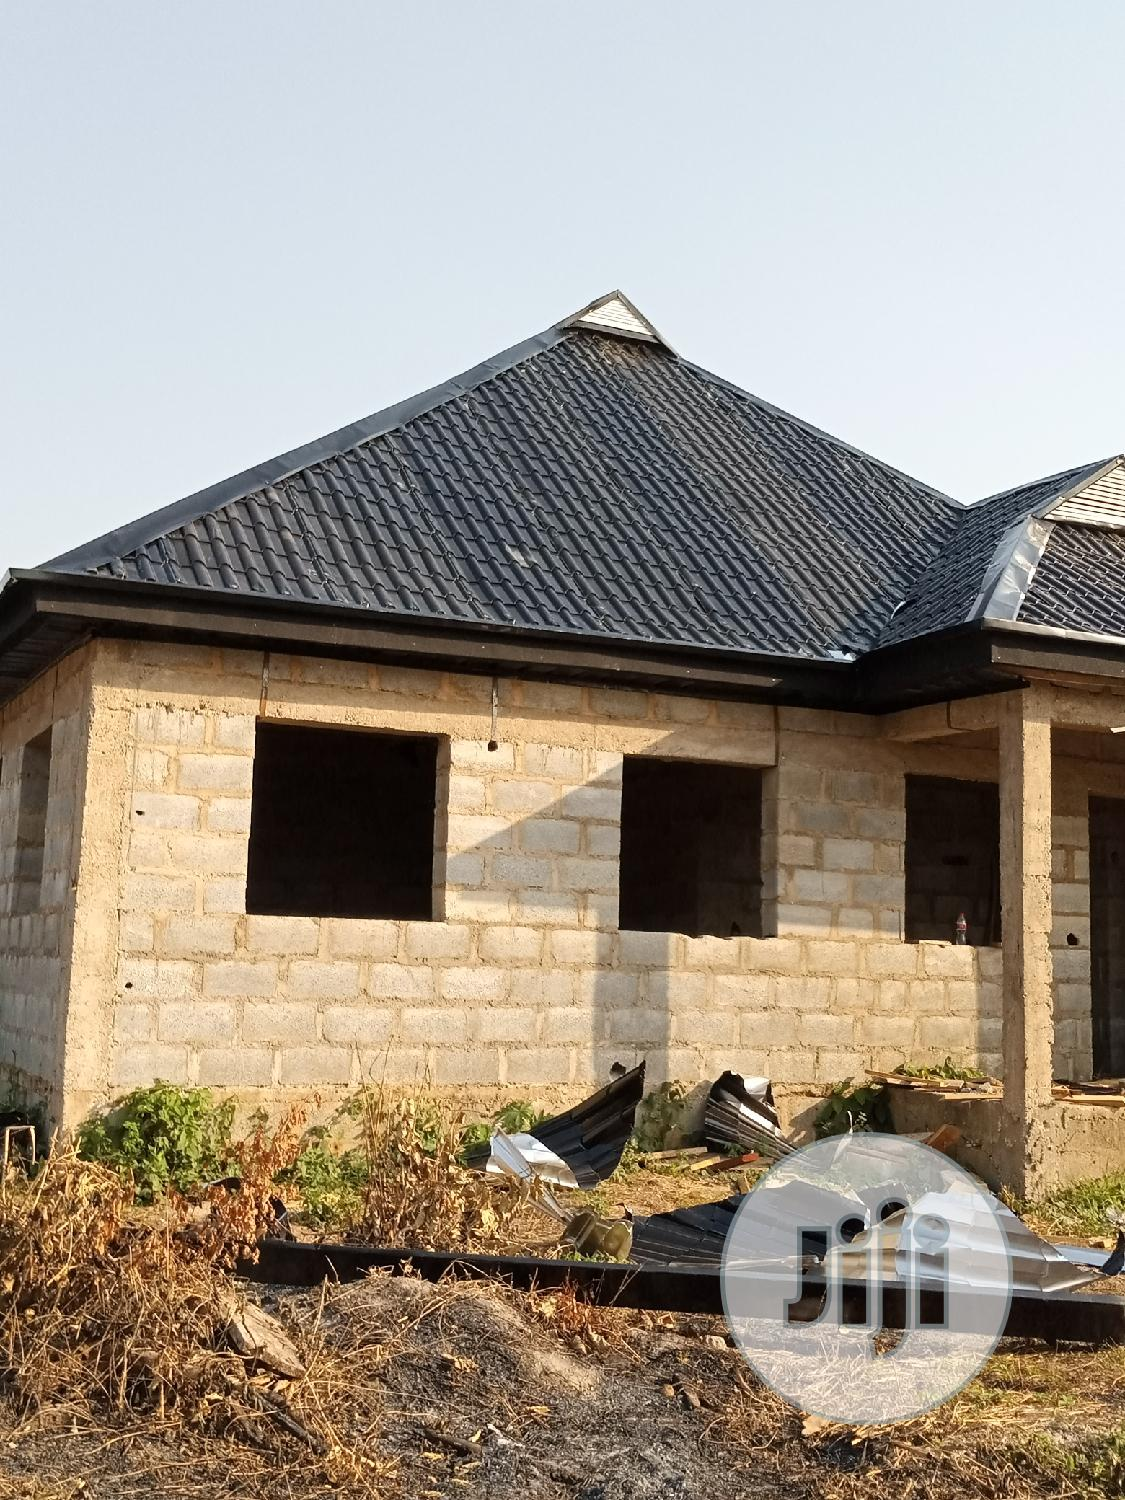 Step Tiles Roofing Sheets 0 5 5